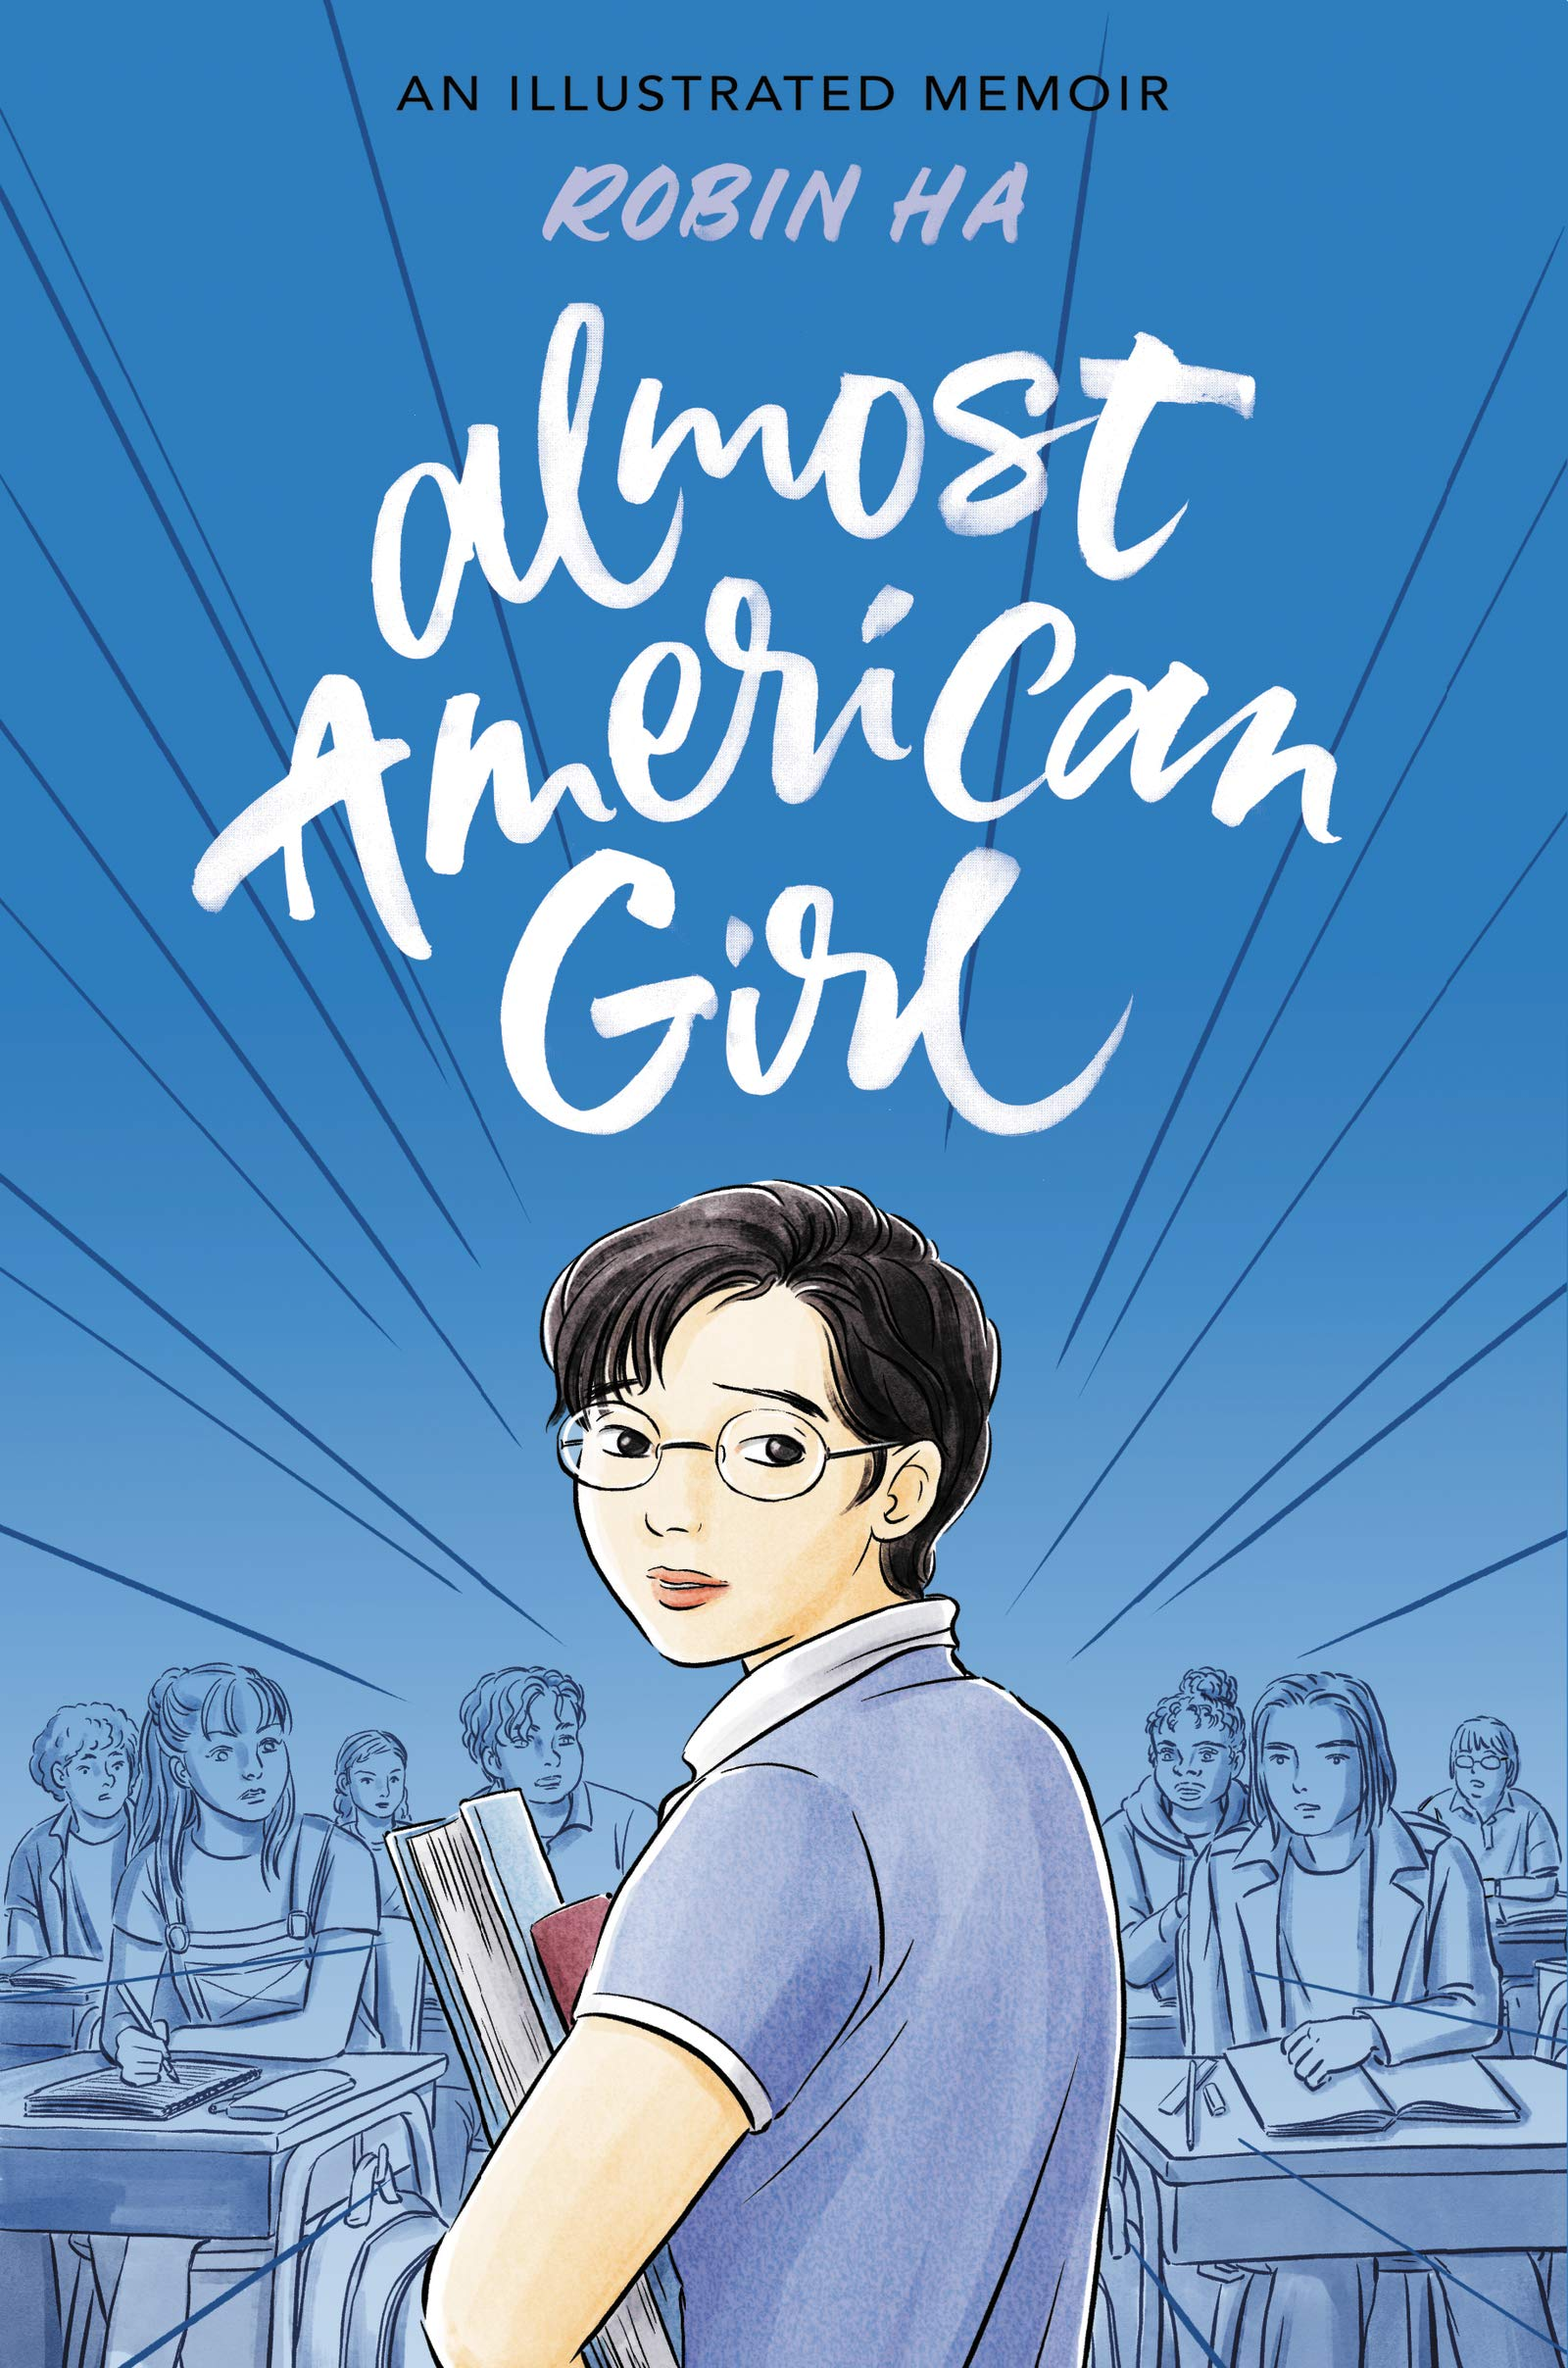 Amazon.com: Almost American Girl: An Illustrated Memoir (9780062685094):  Ha, Robin, Ha, Robin: Books